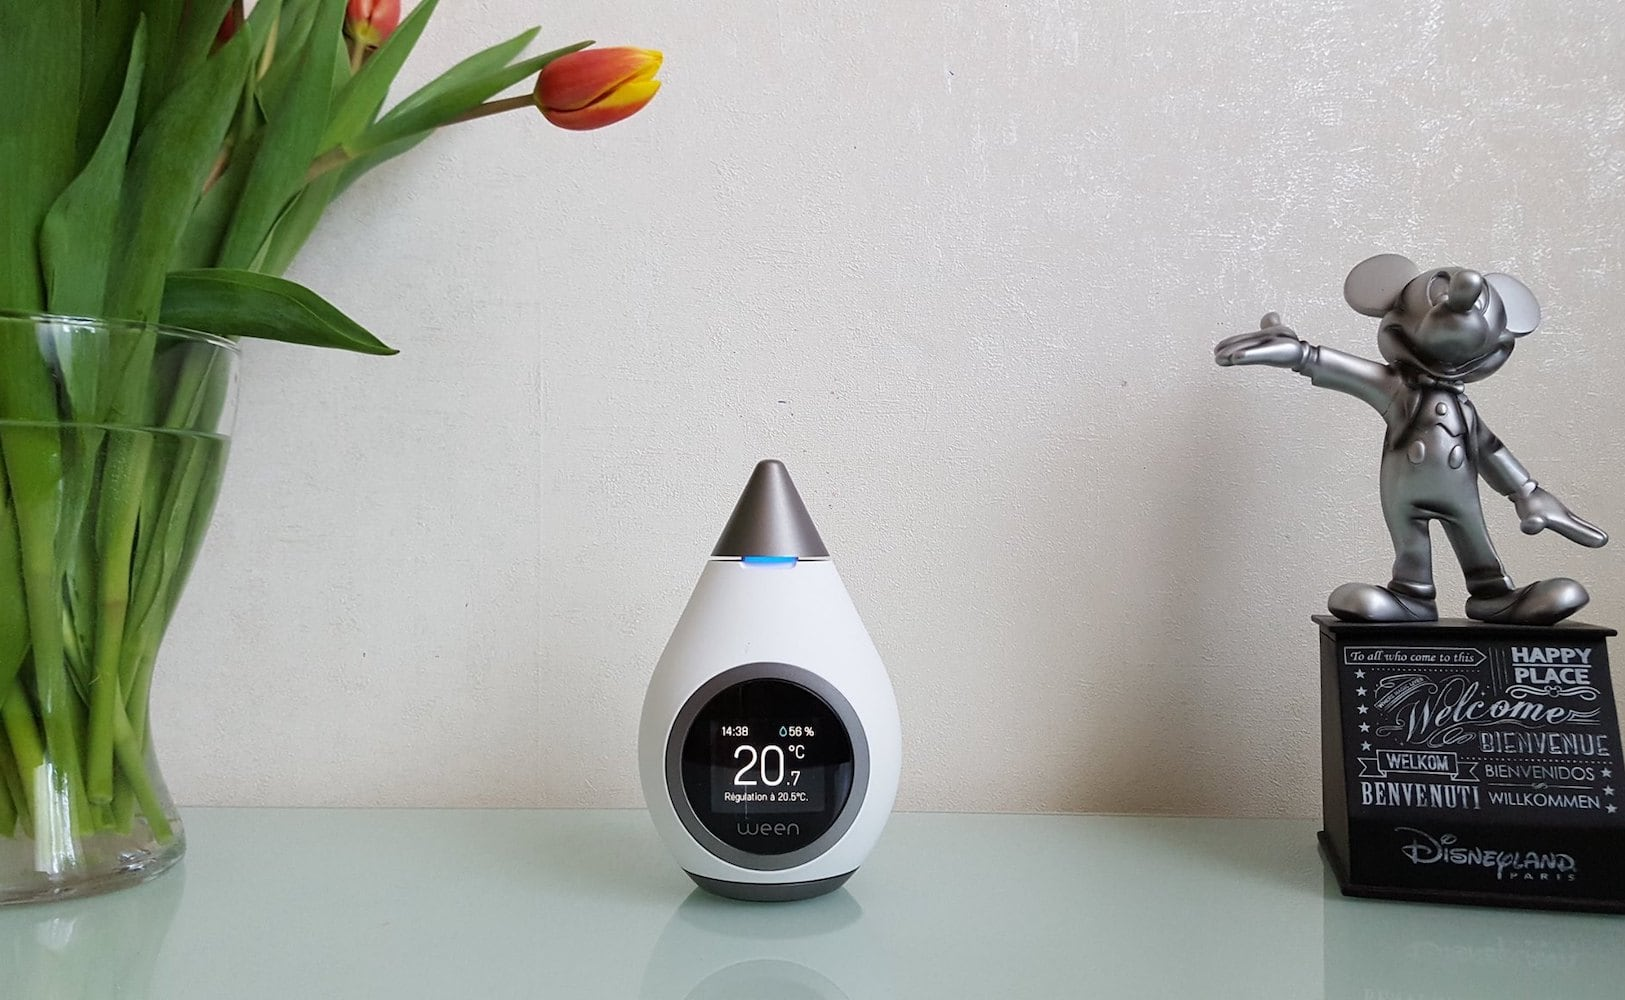 Ween Life-Responsive Smart Thermostat reduces heating expenses when you're away